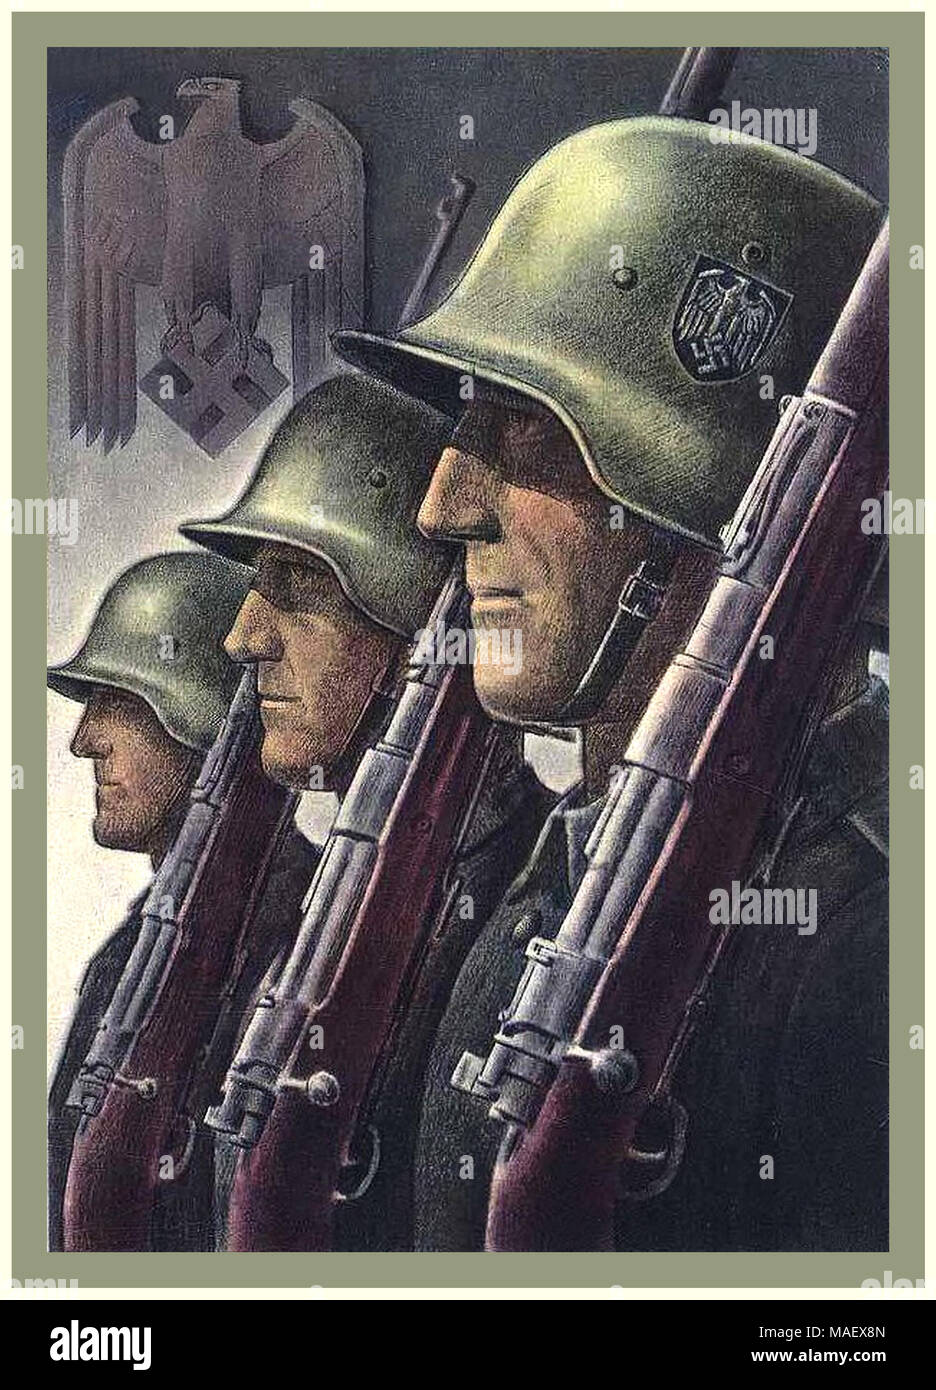 Vintage 1940's Nazi Germany WW2 Propaganda Wehrmacht Army Soldier Military Recruitment Poster - Stock Image